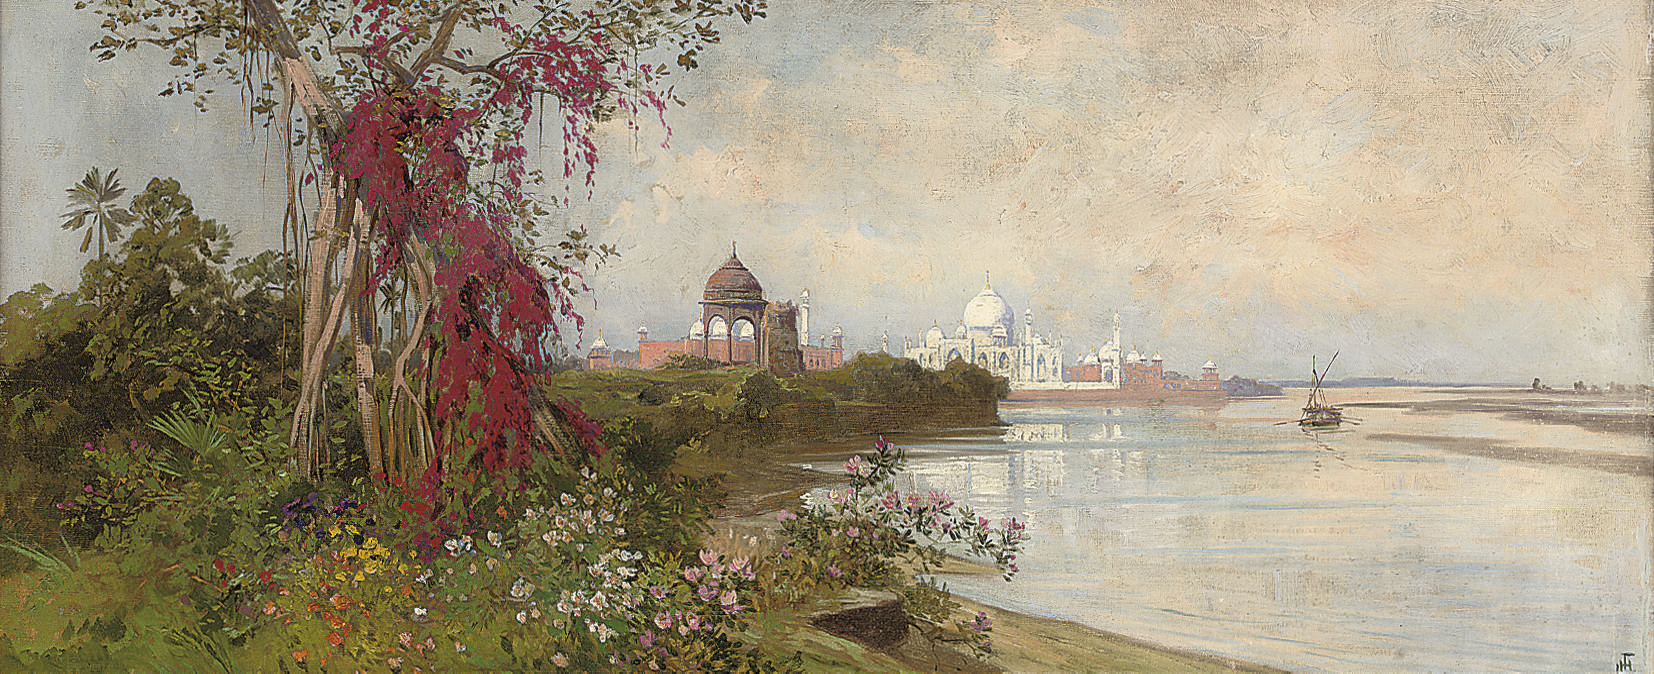 The Taj Mahal from the banks of the Yamuna River